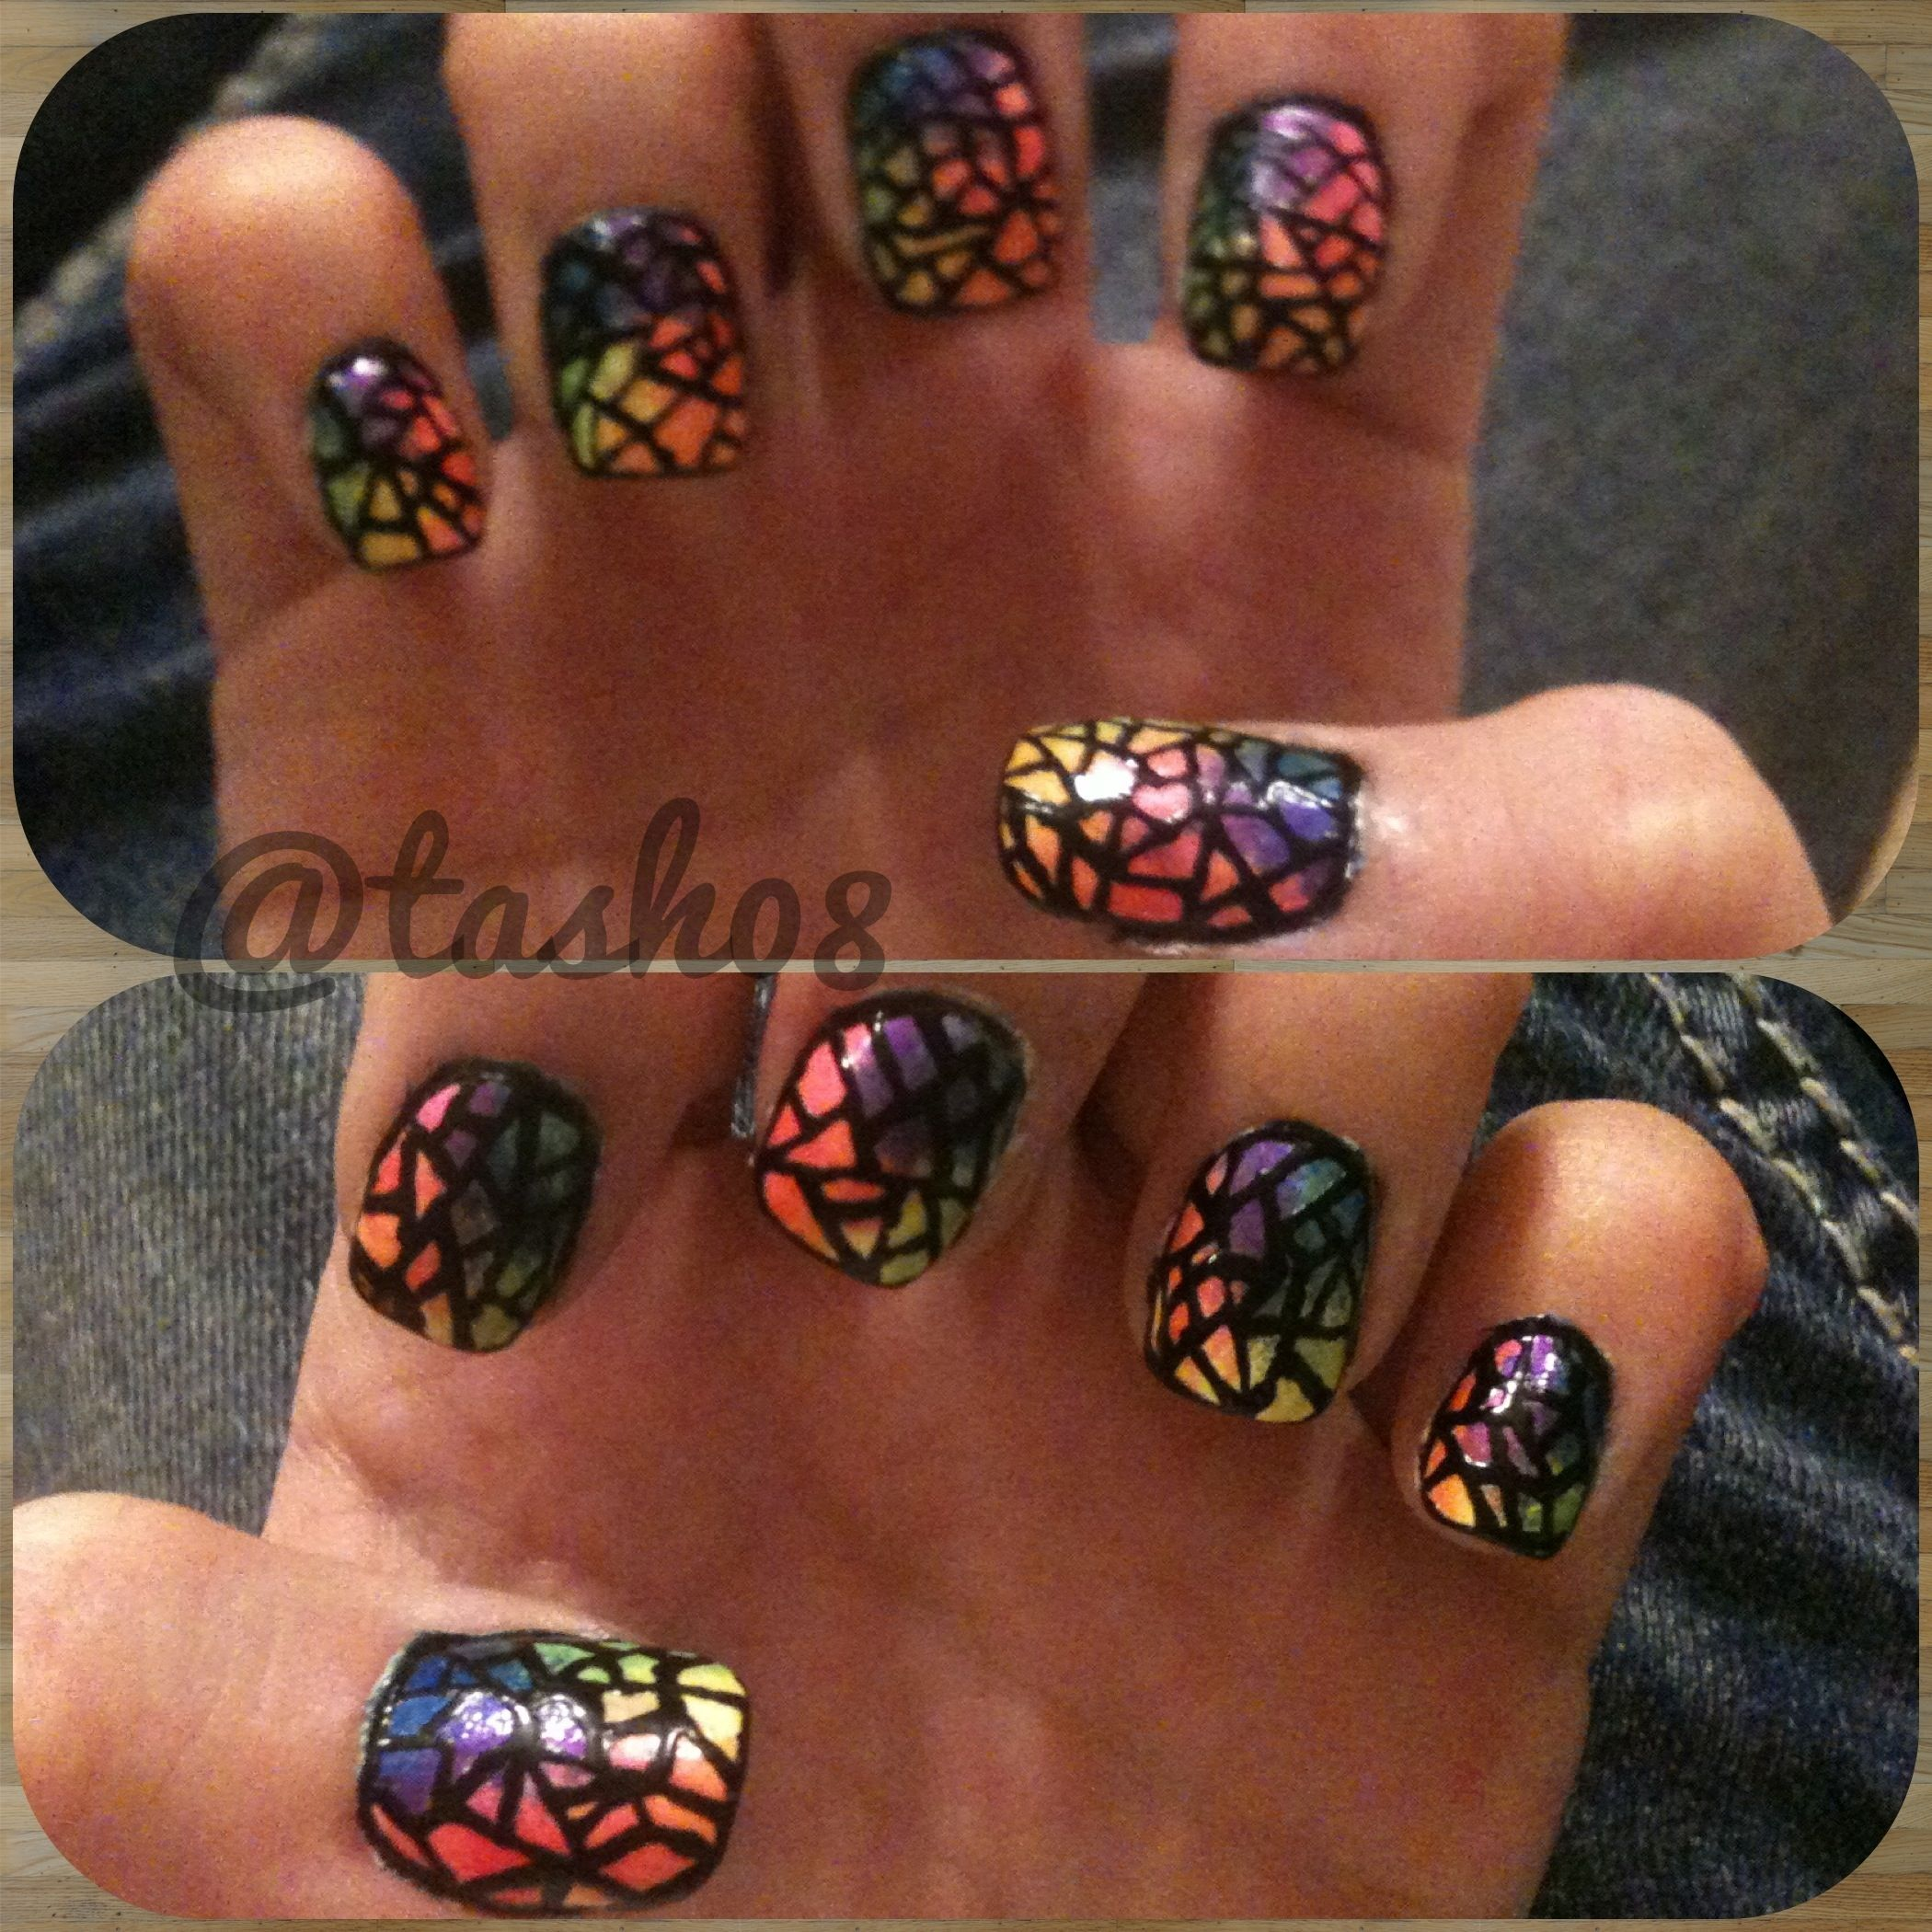 Stain Glass Nails | My Nail Art That I Did... :) | Pinterest ...